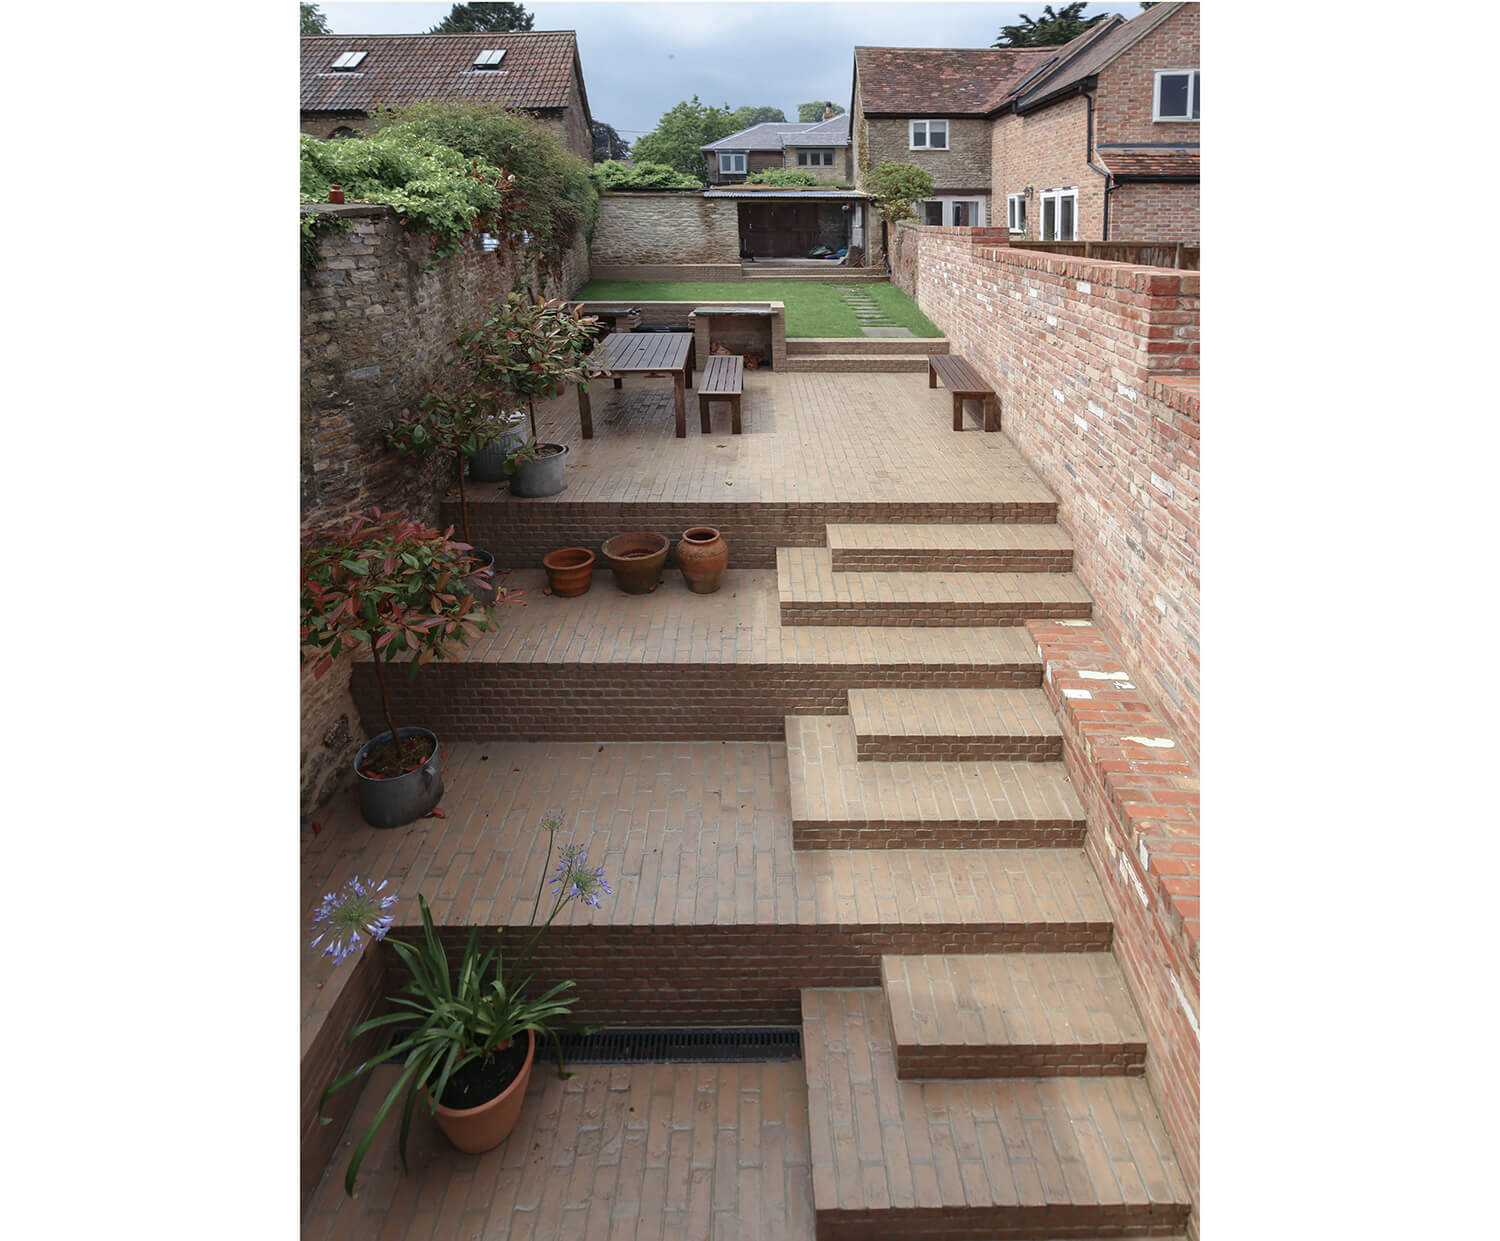 2b-Bruton-Narrow-House-Somerset-Prewett-Bizley-Architects